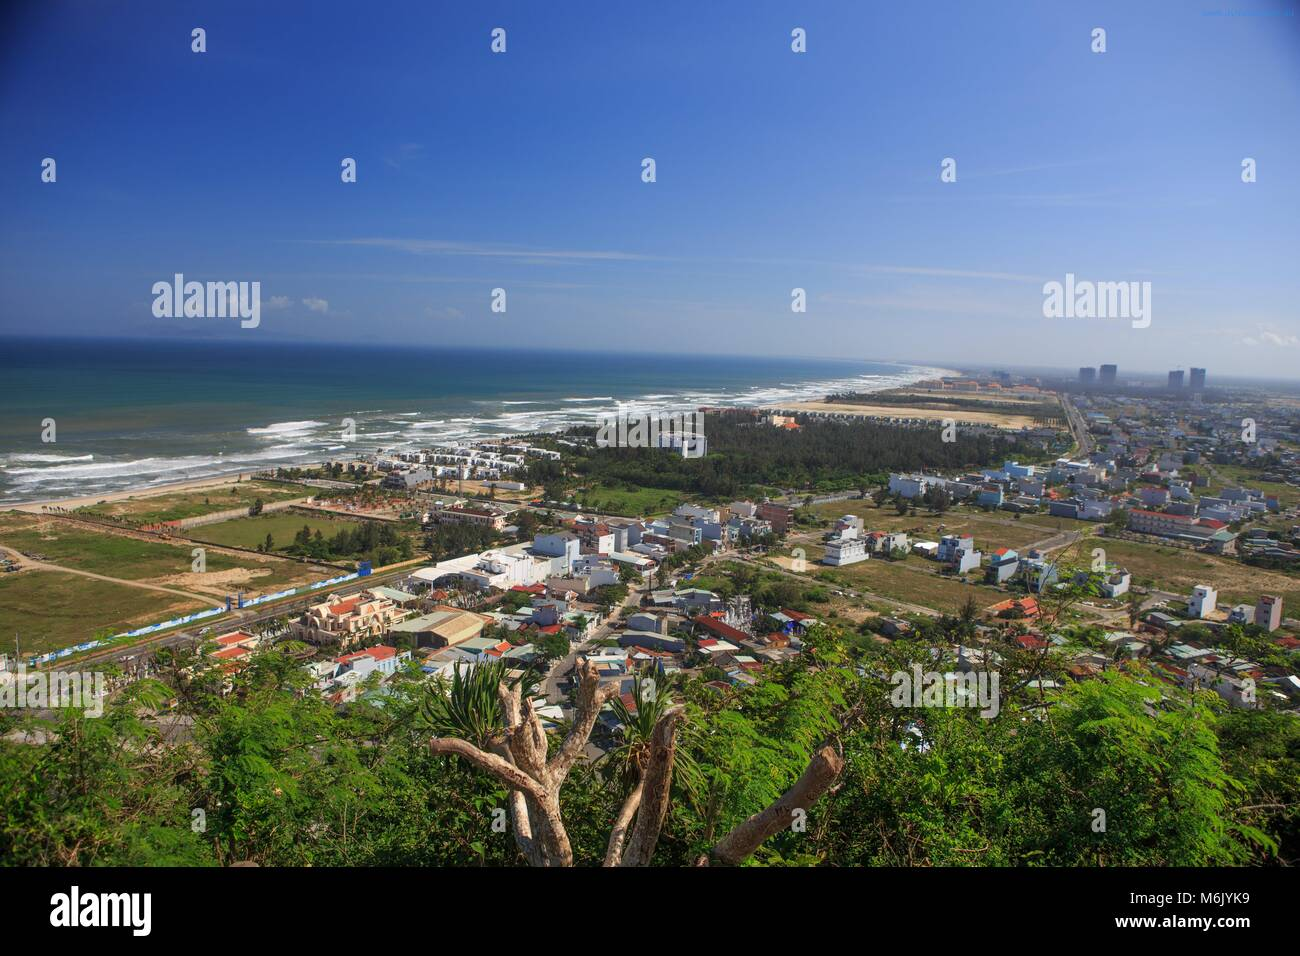 The view from the top of Thuy Son Mountain near Da Nang, Vietnam. - Stock Image